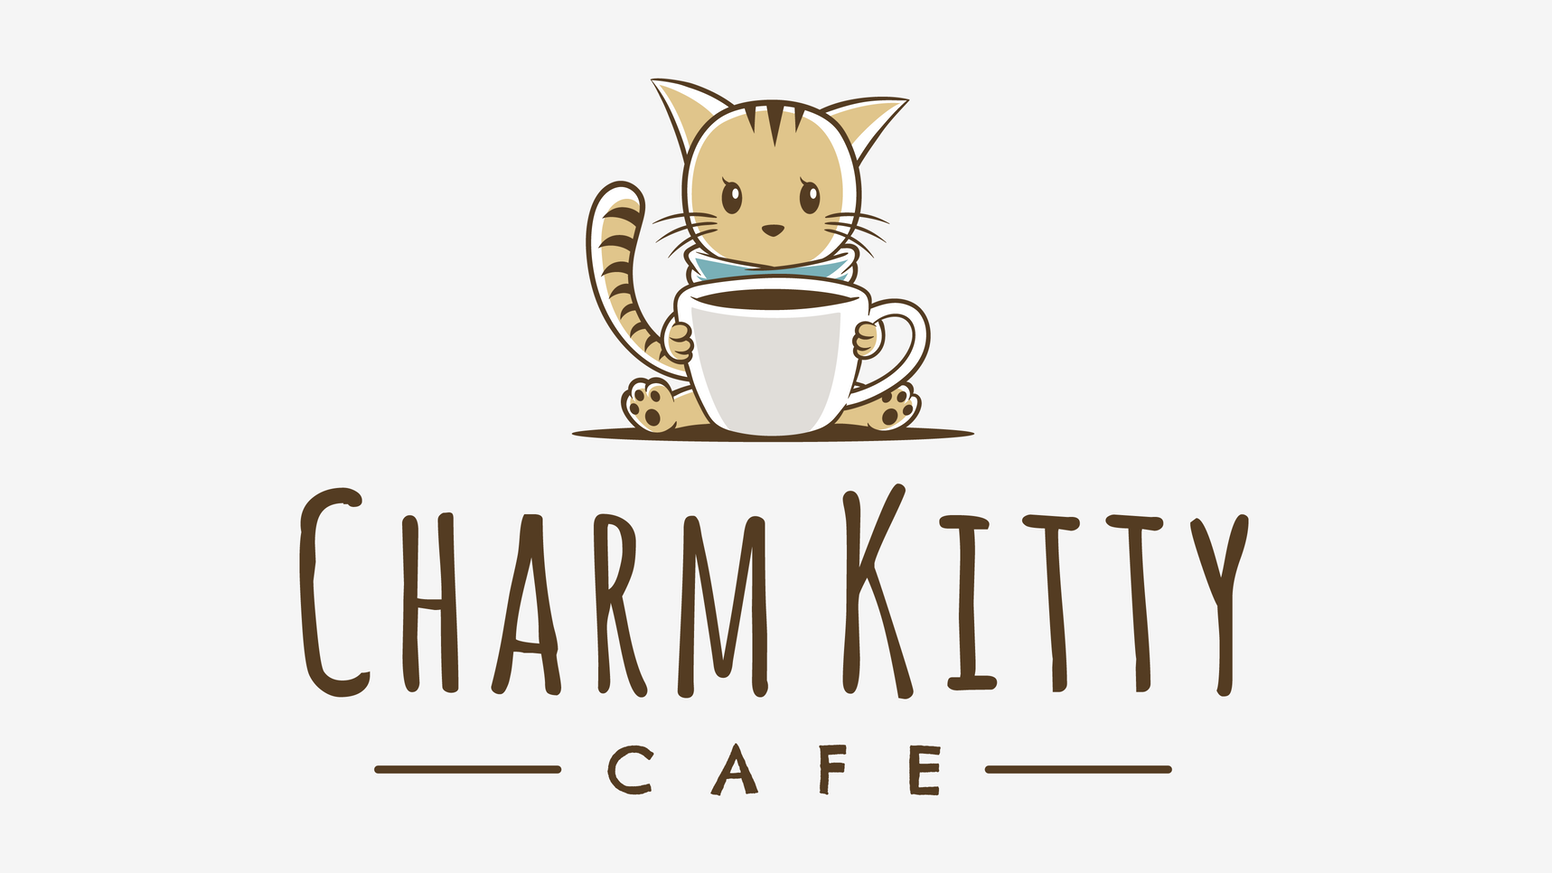 In partnership with the Baltimore Humane Society, Baltimore is getting its first cat cafe and coworking space, Charm Kitty Cafe.